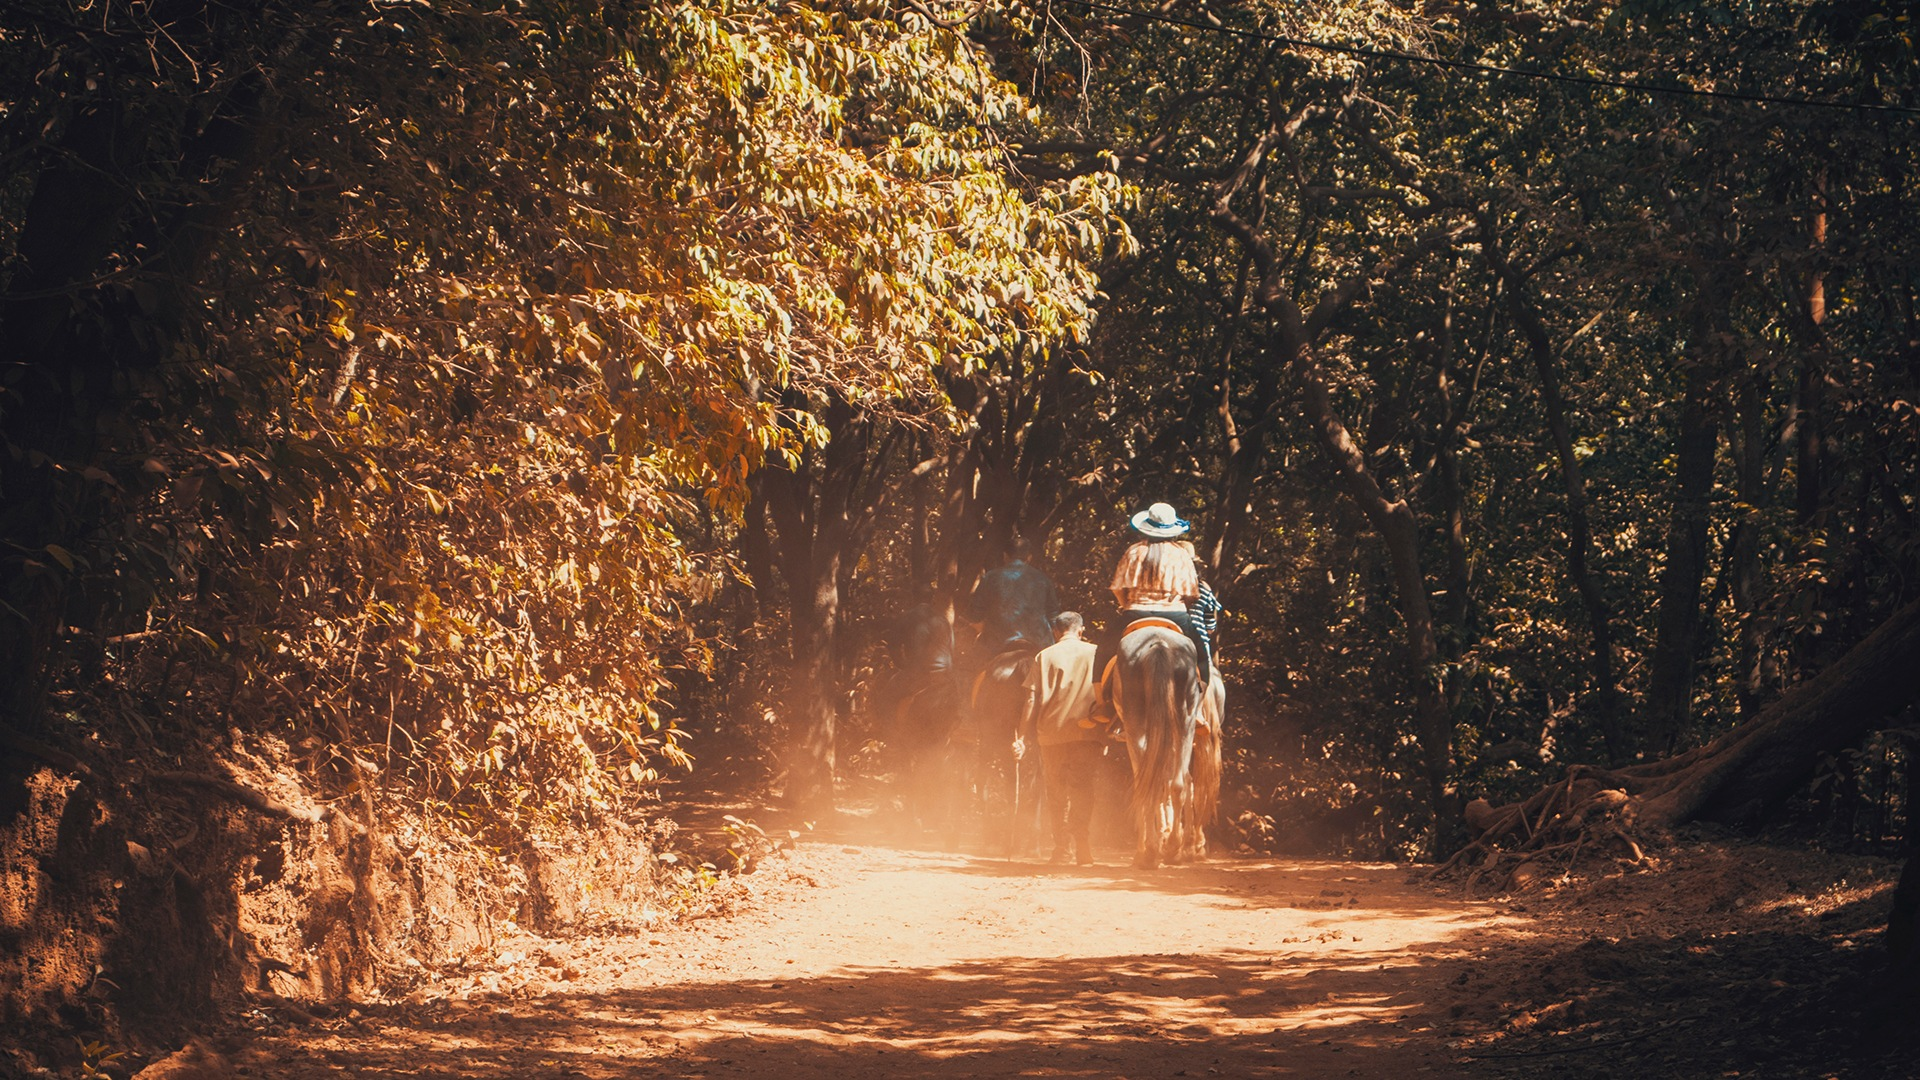 a road that leads adventure  by Akash Chakraborty